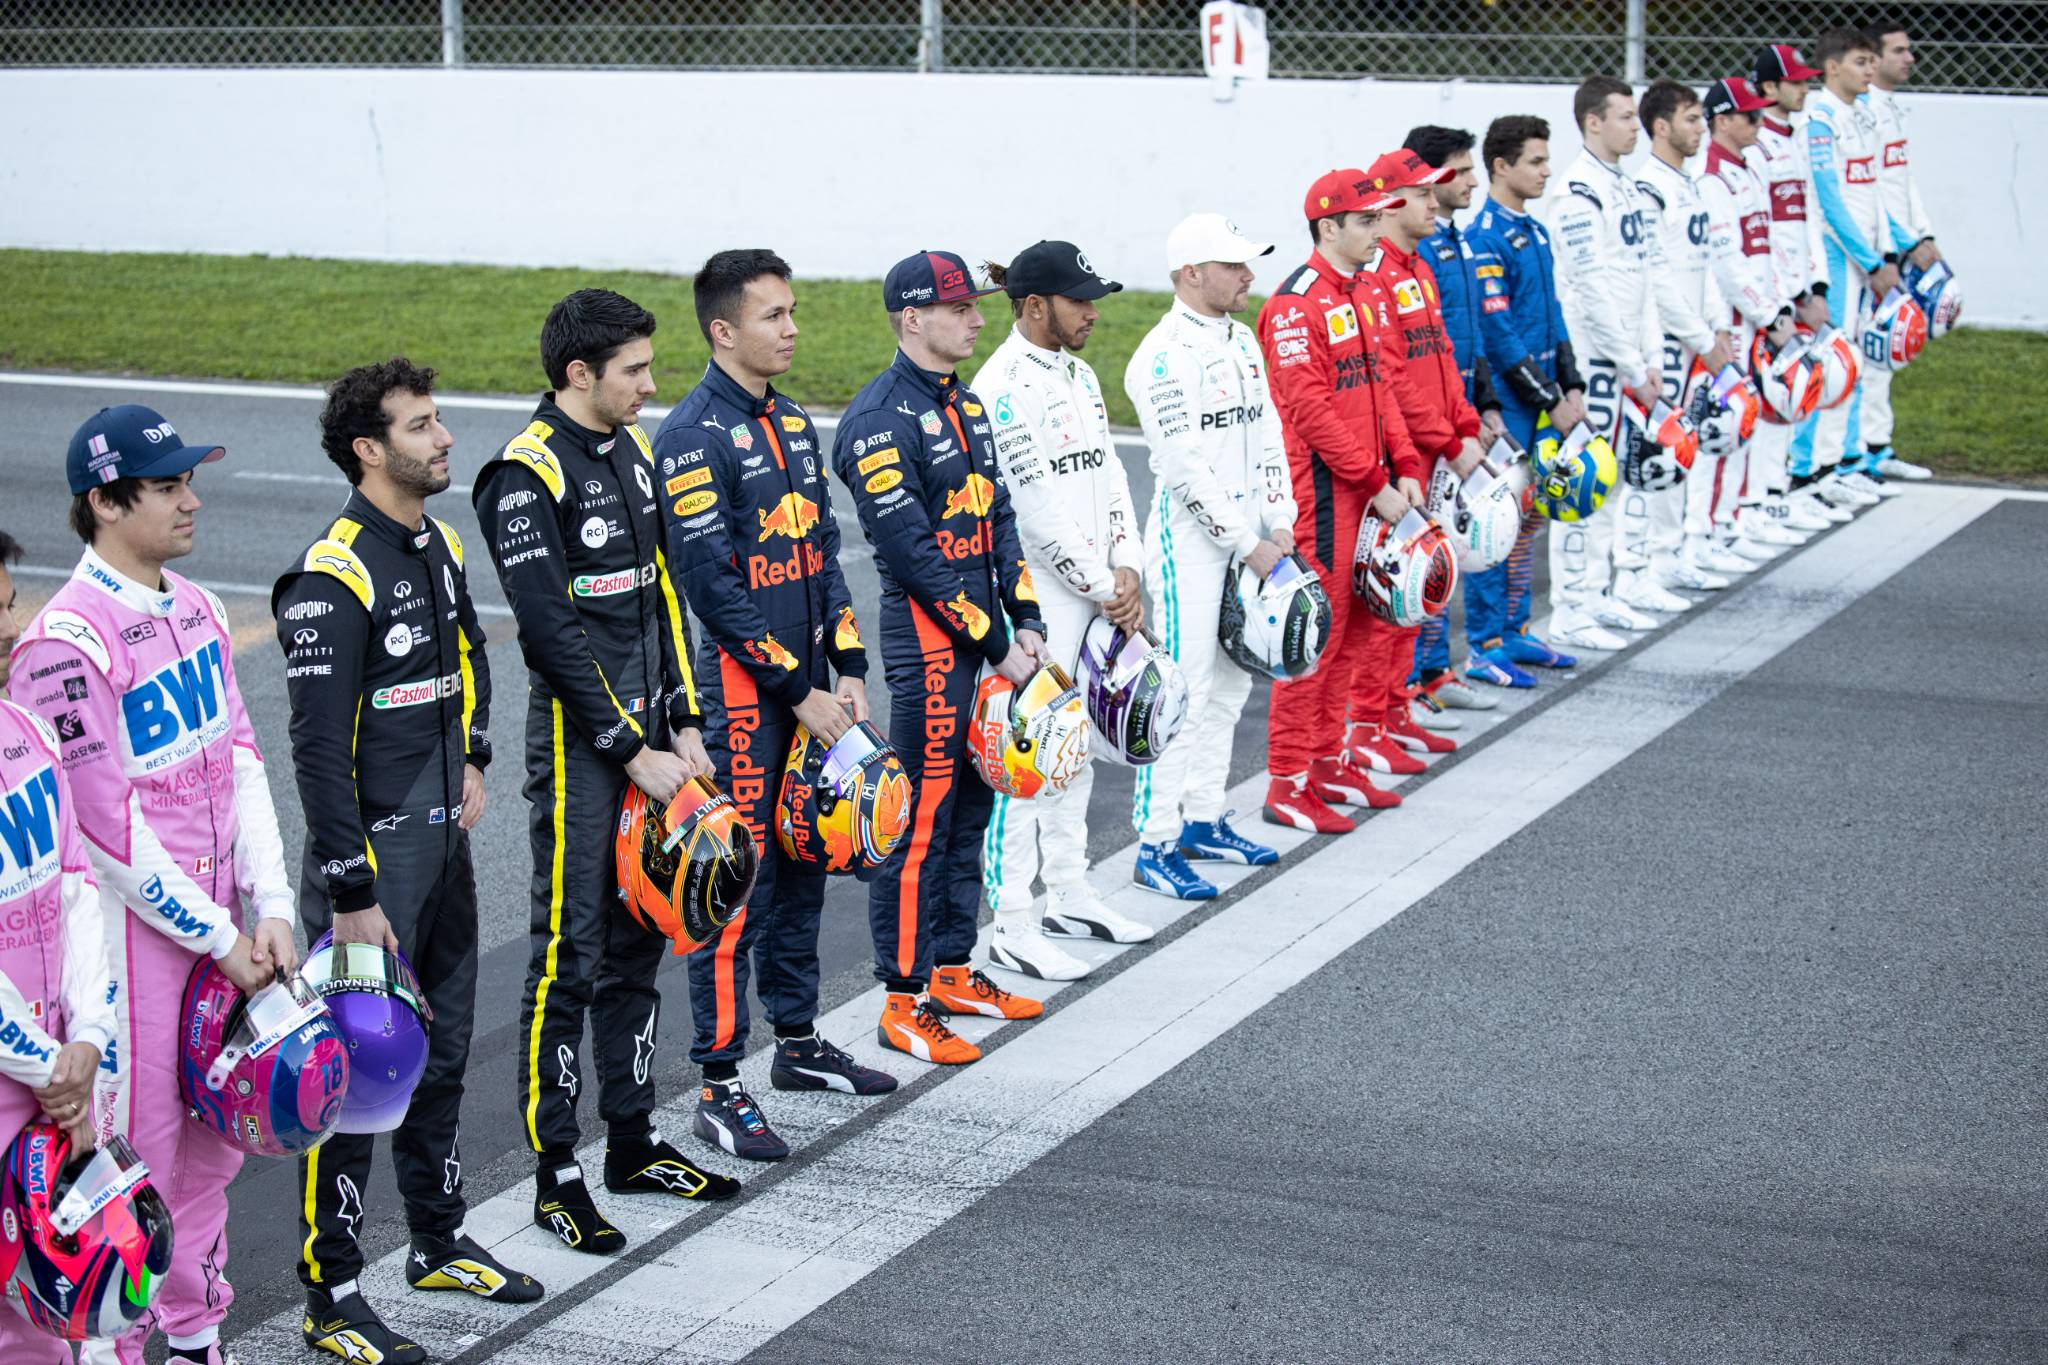 A drivers group photograph.